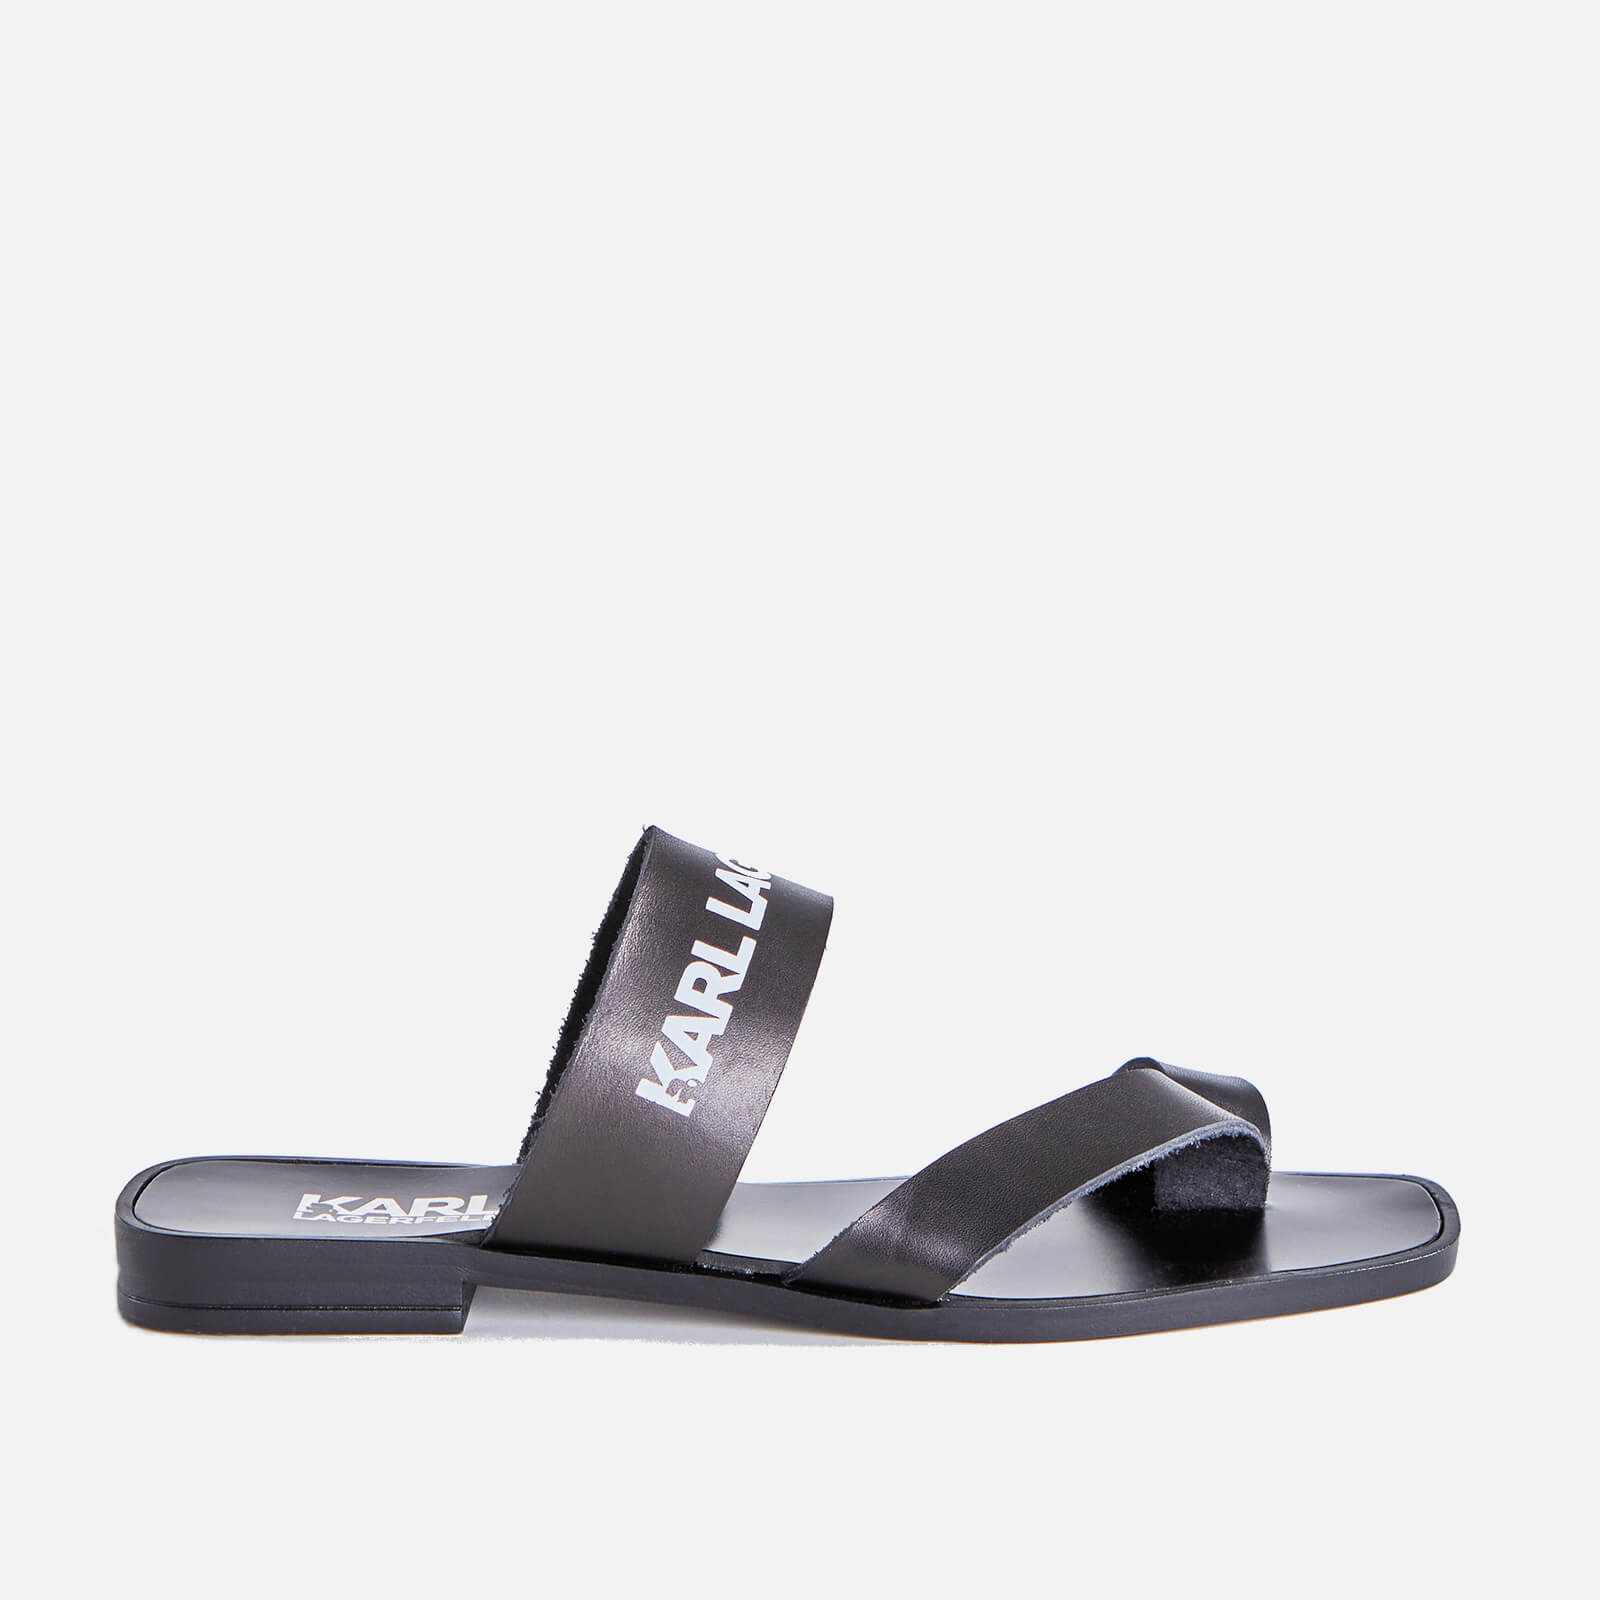 Karl Lagerfeld Womens Skoot Ii Leather Flat Sandals Black Uk 8